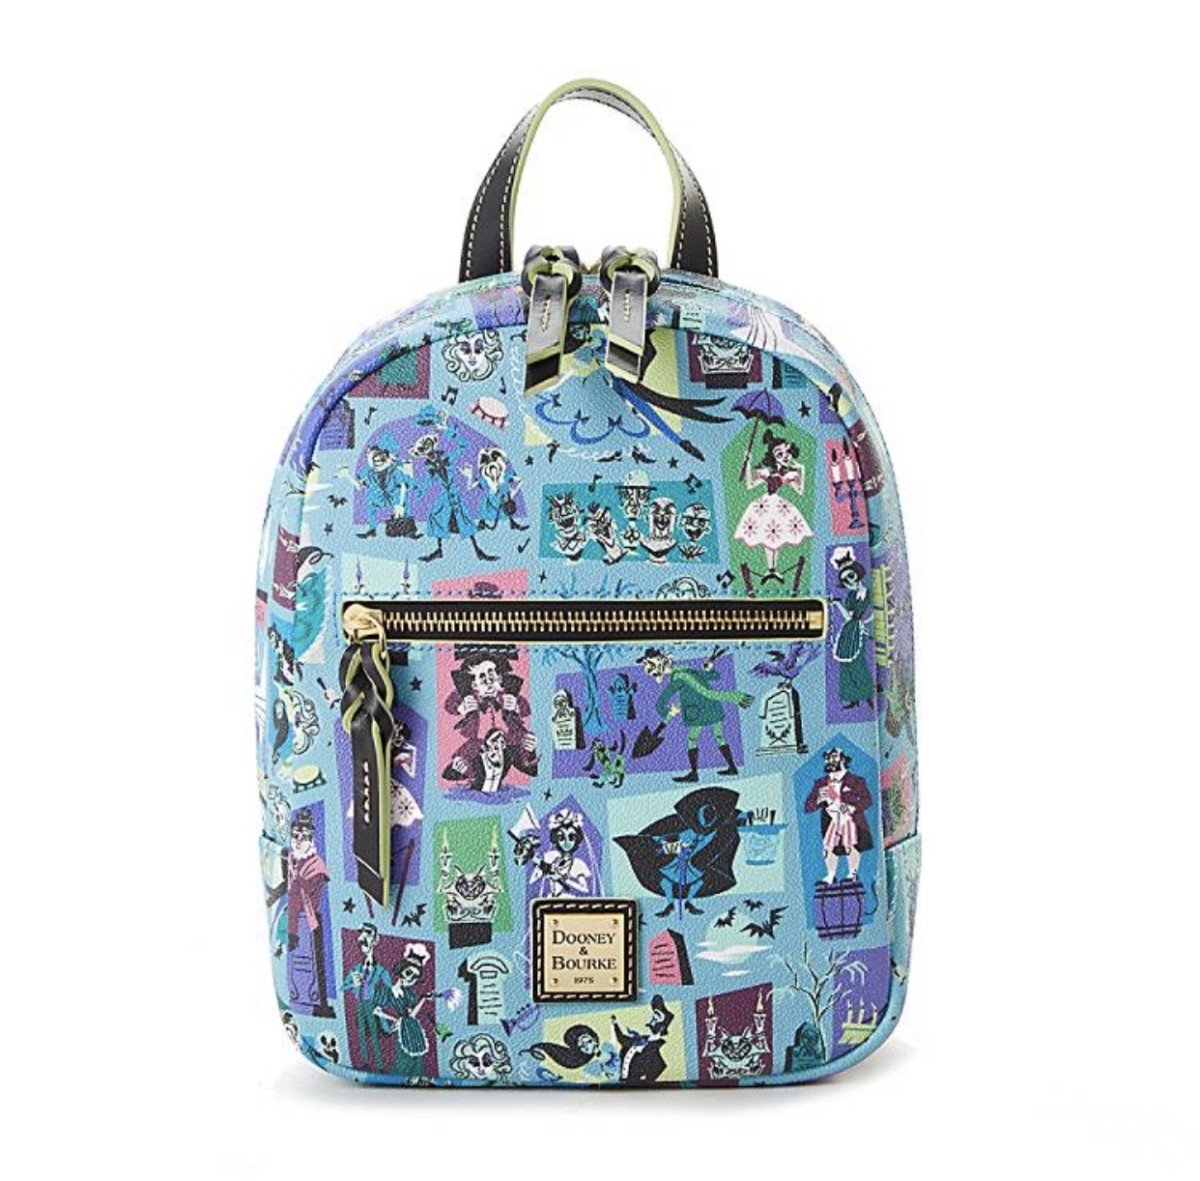 NEW! The Haunted Mansion by Dooney & Bourke 7